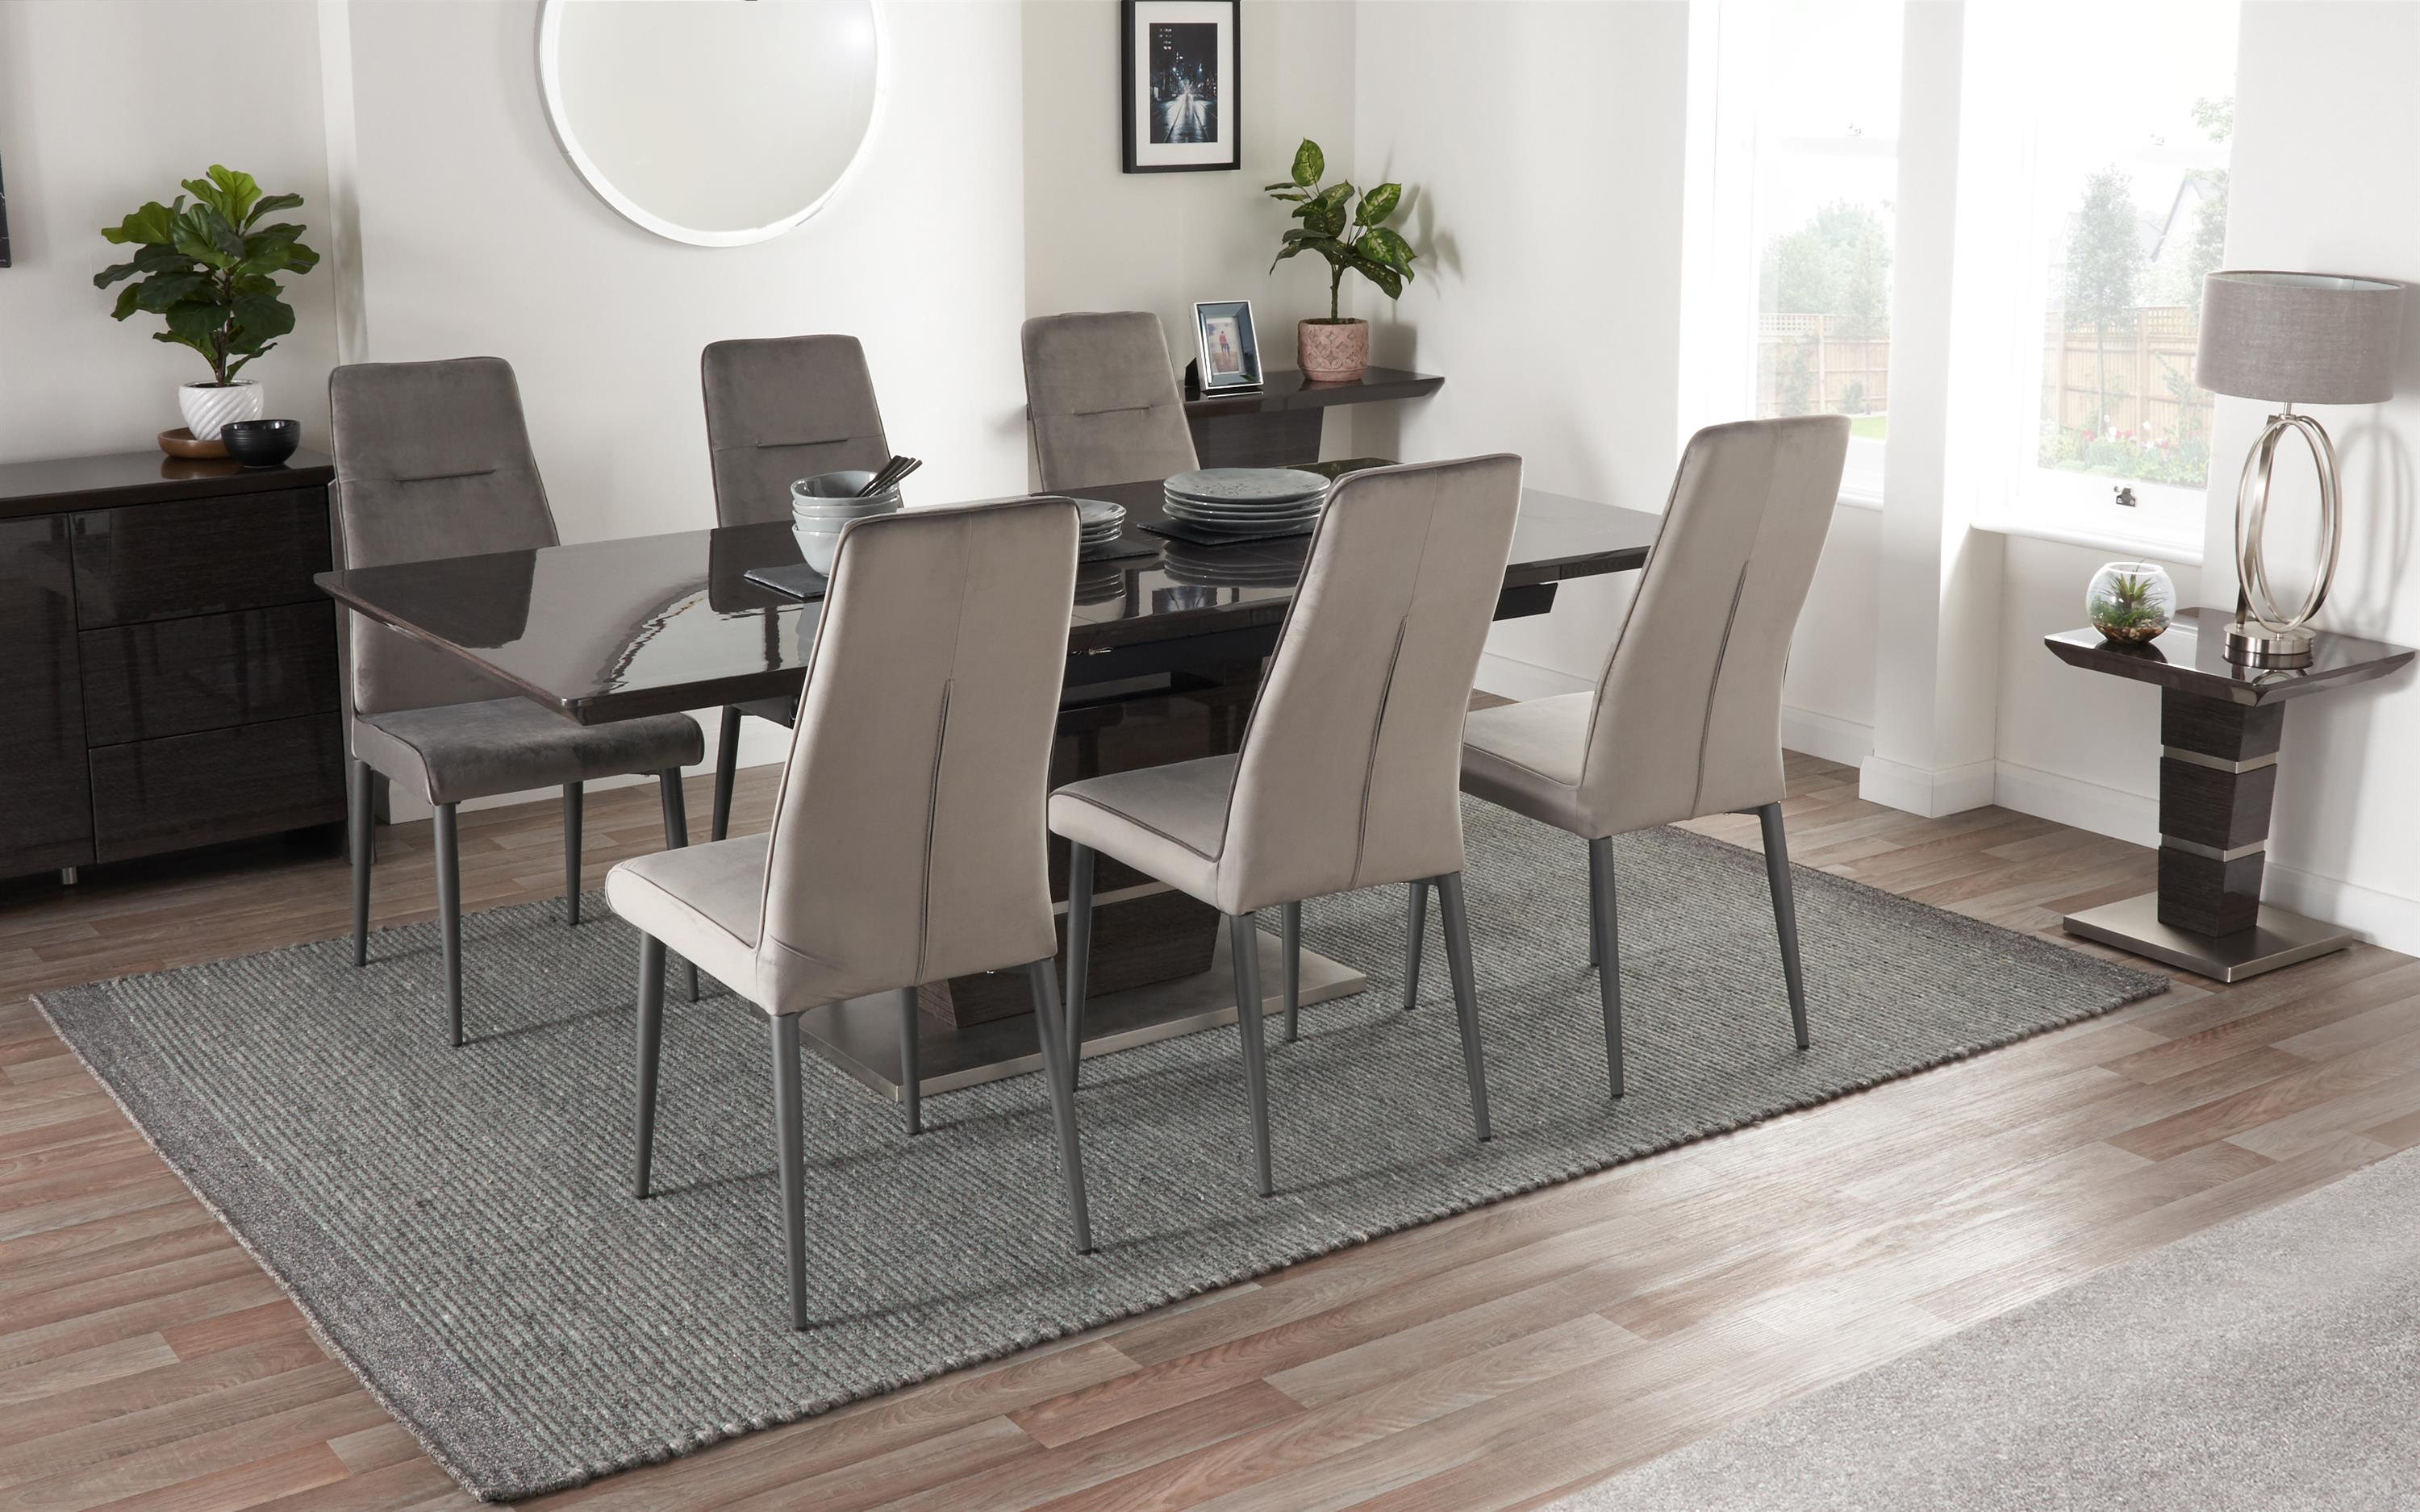 Sisi Italia San Pietro 1.6m Extending Dining Table & 6 Chairs